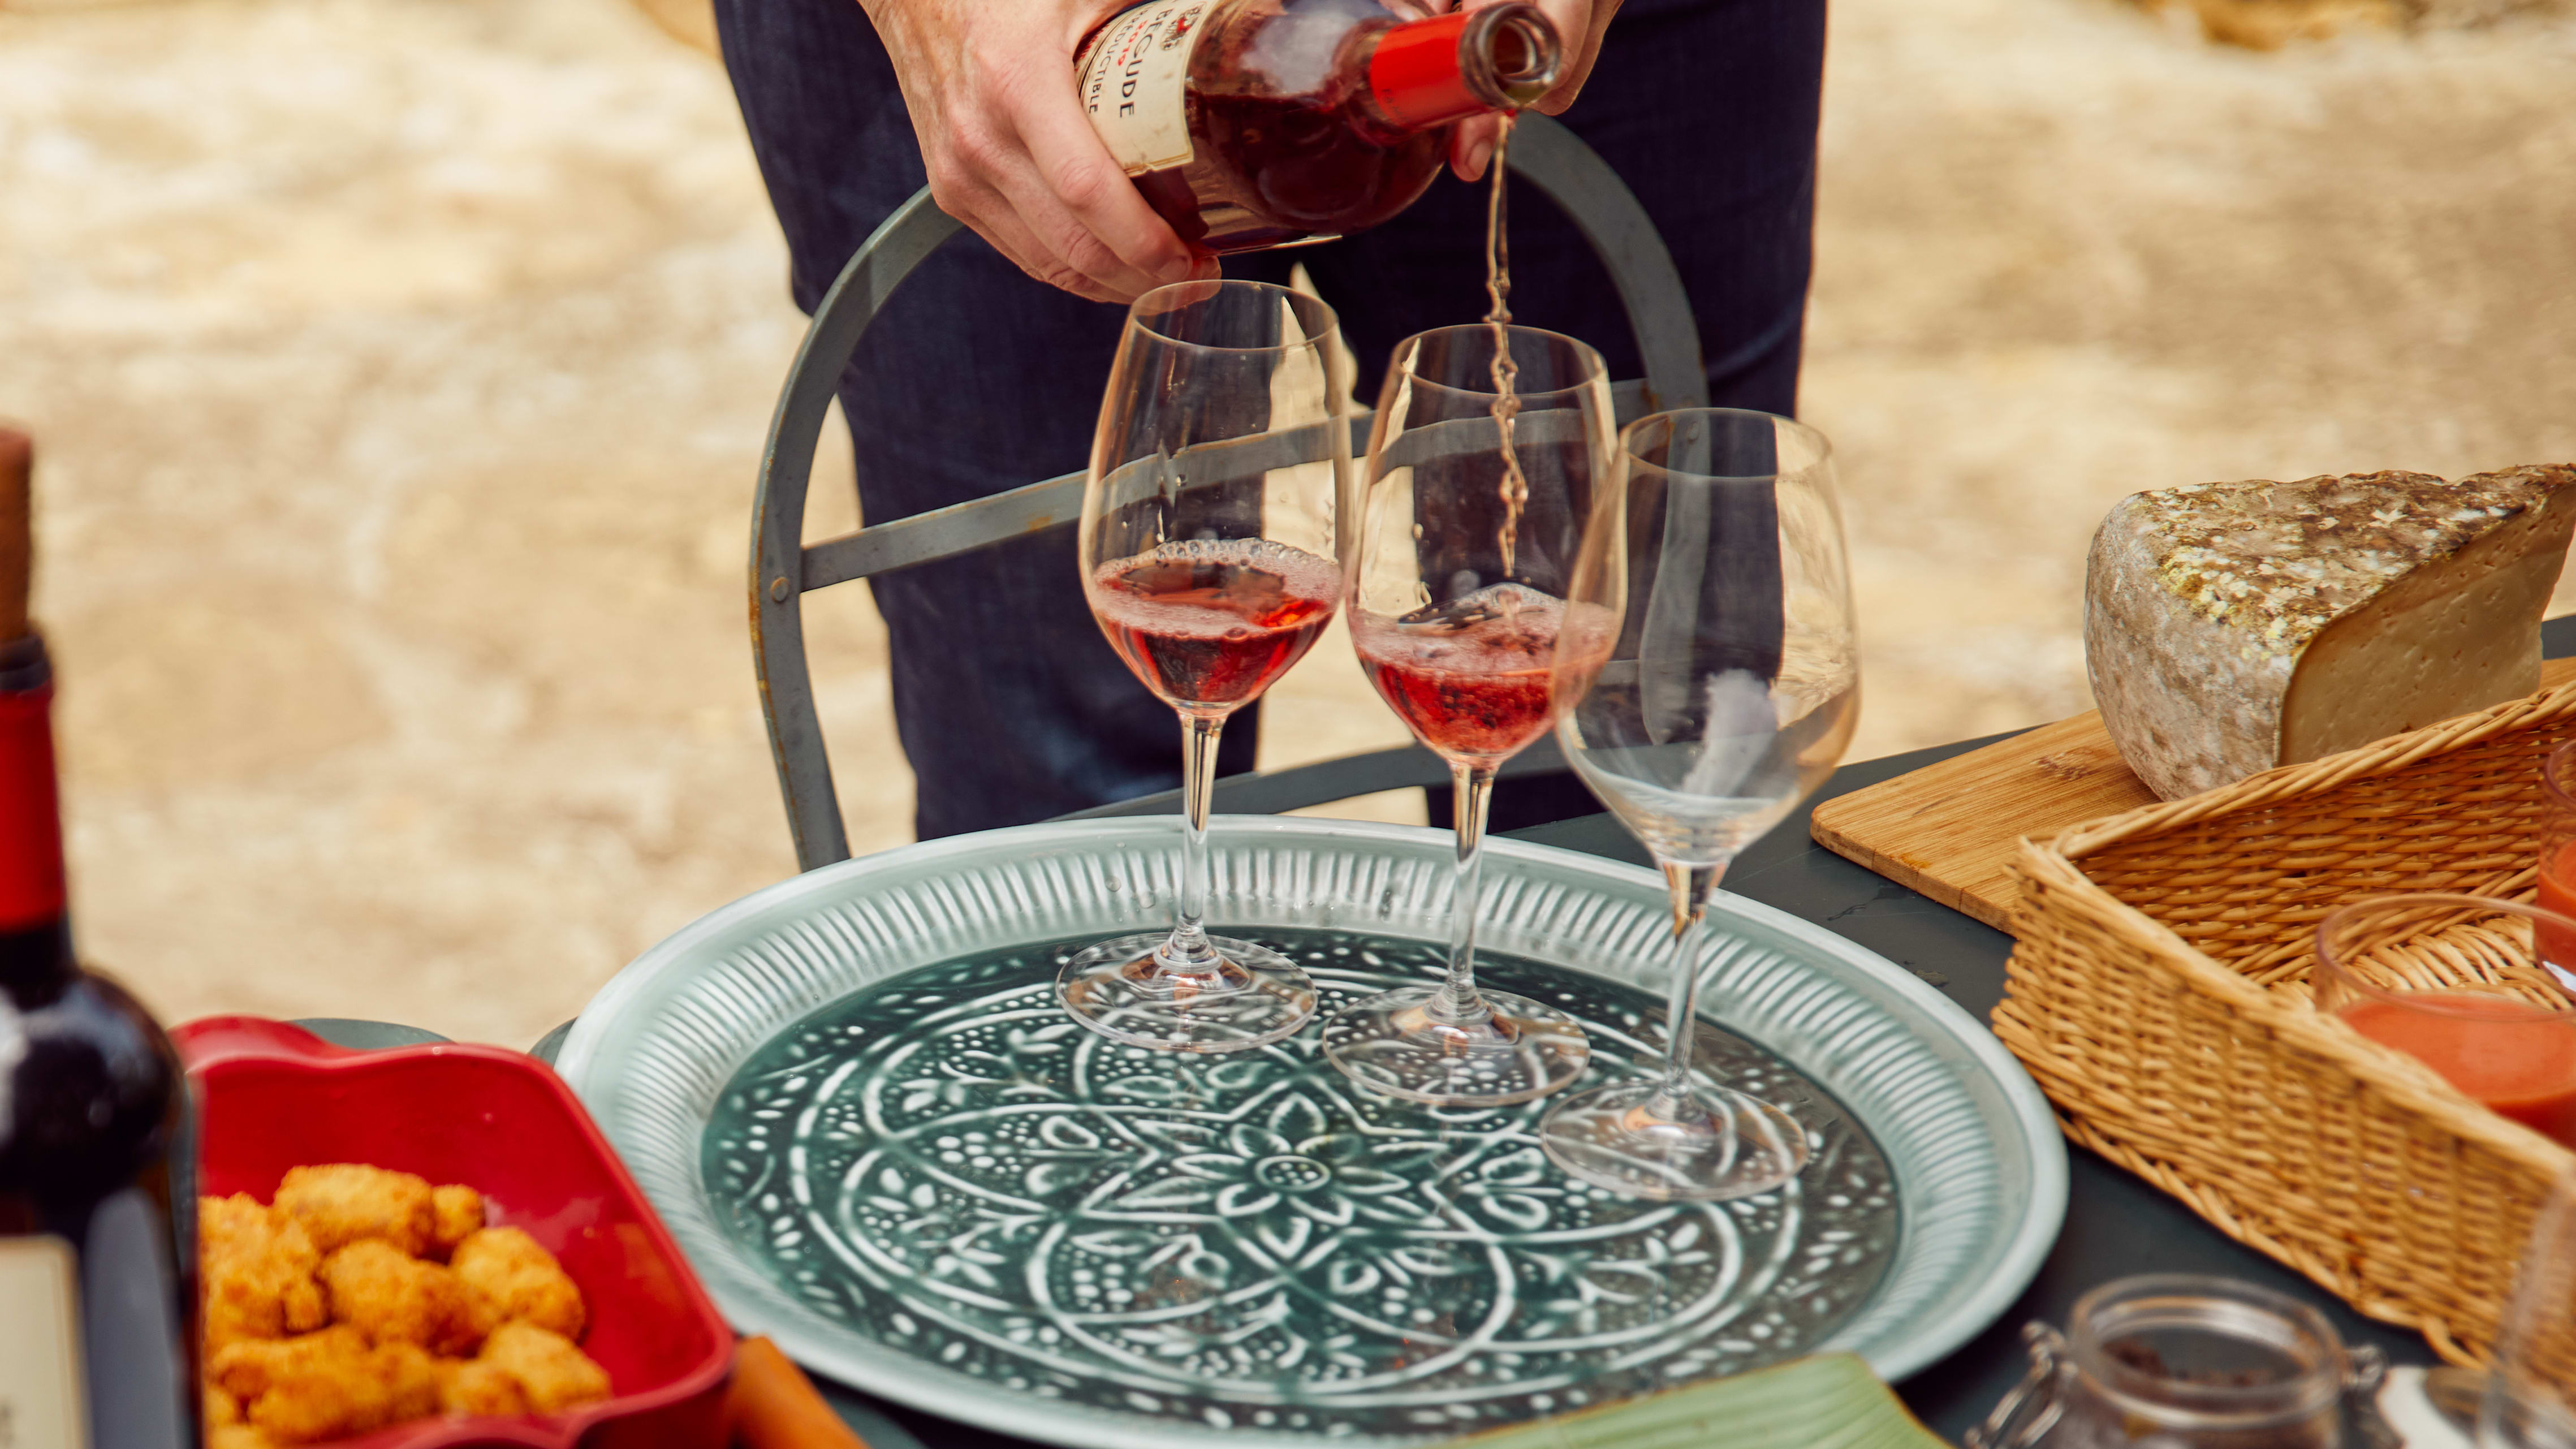 How to Master the Skill of Pouring Wine